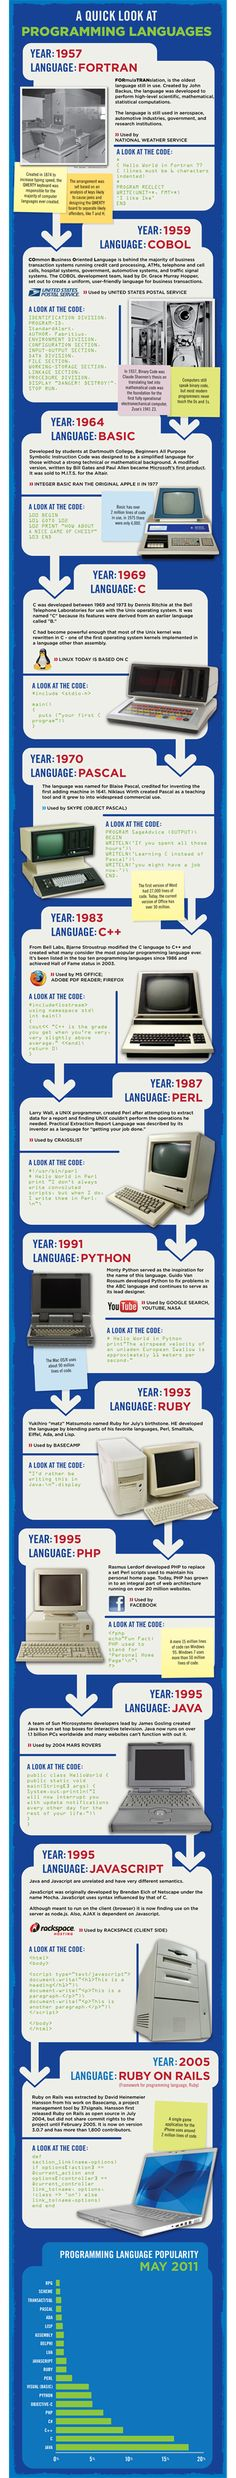 A Quick Look At Programming Languages[INFOGRAPHIC]